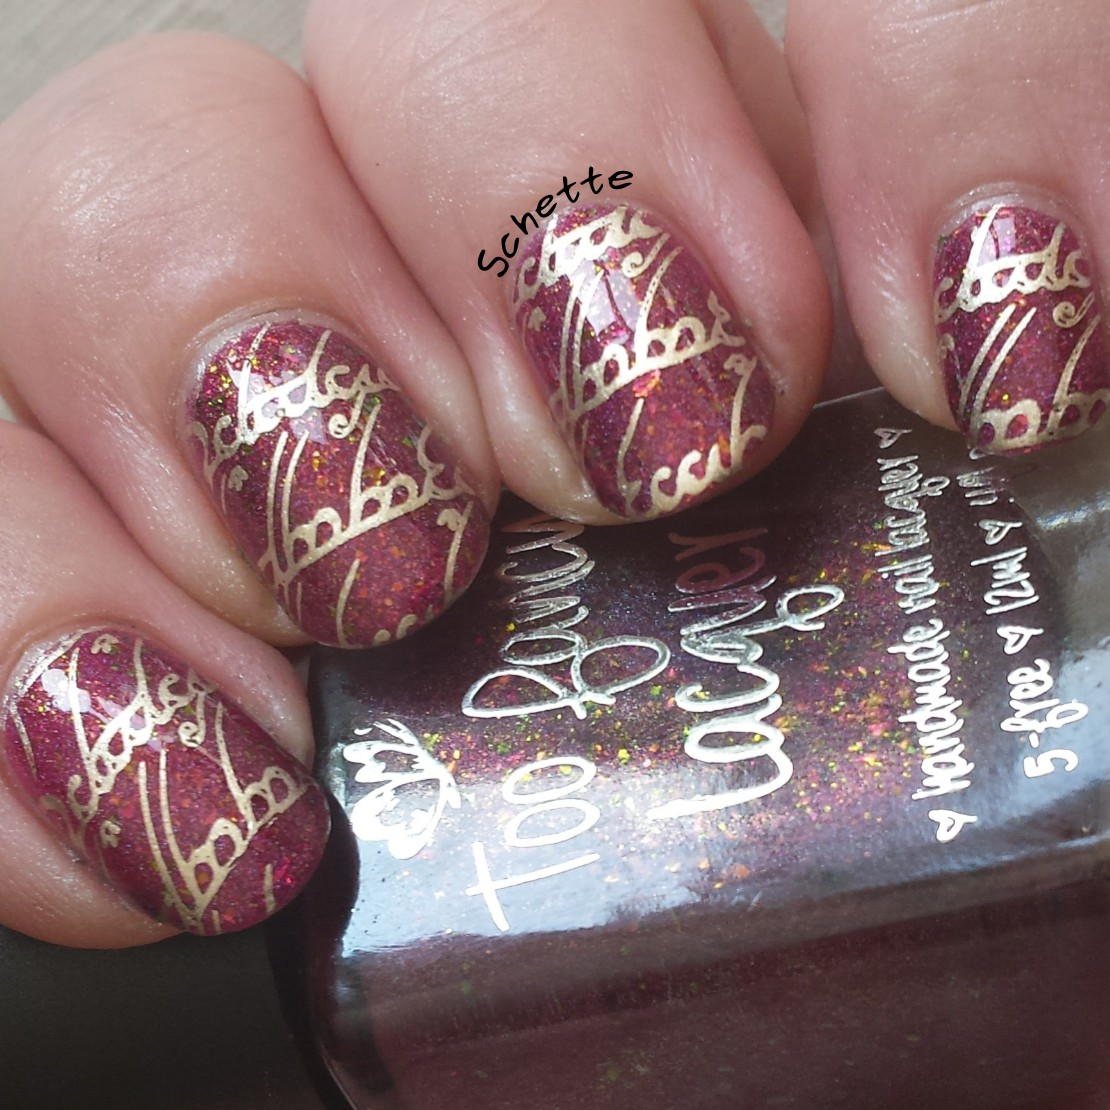 Too Fancy Lacquer - Hola Sangria